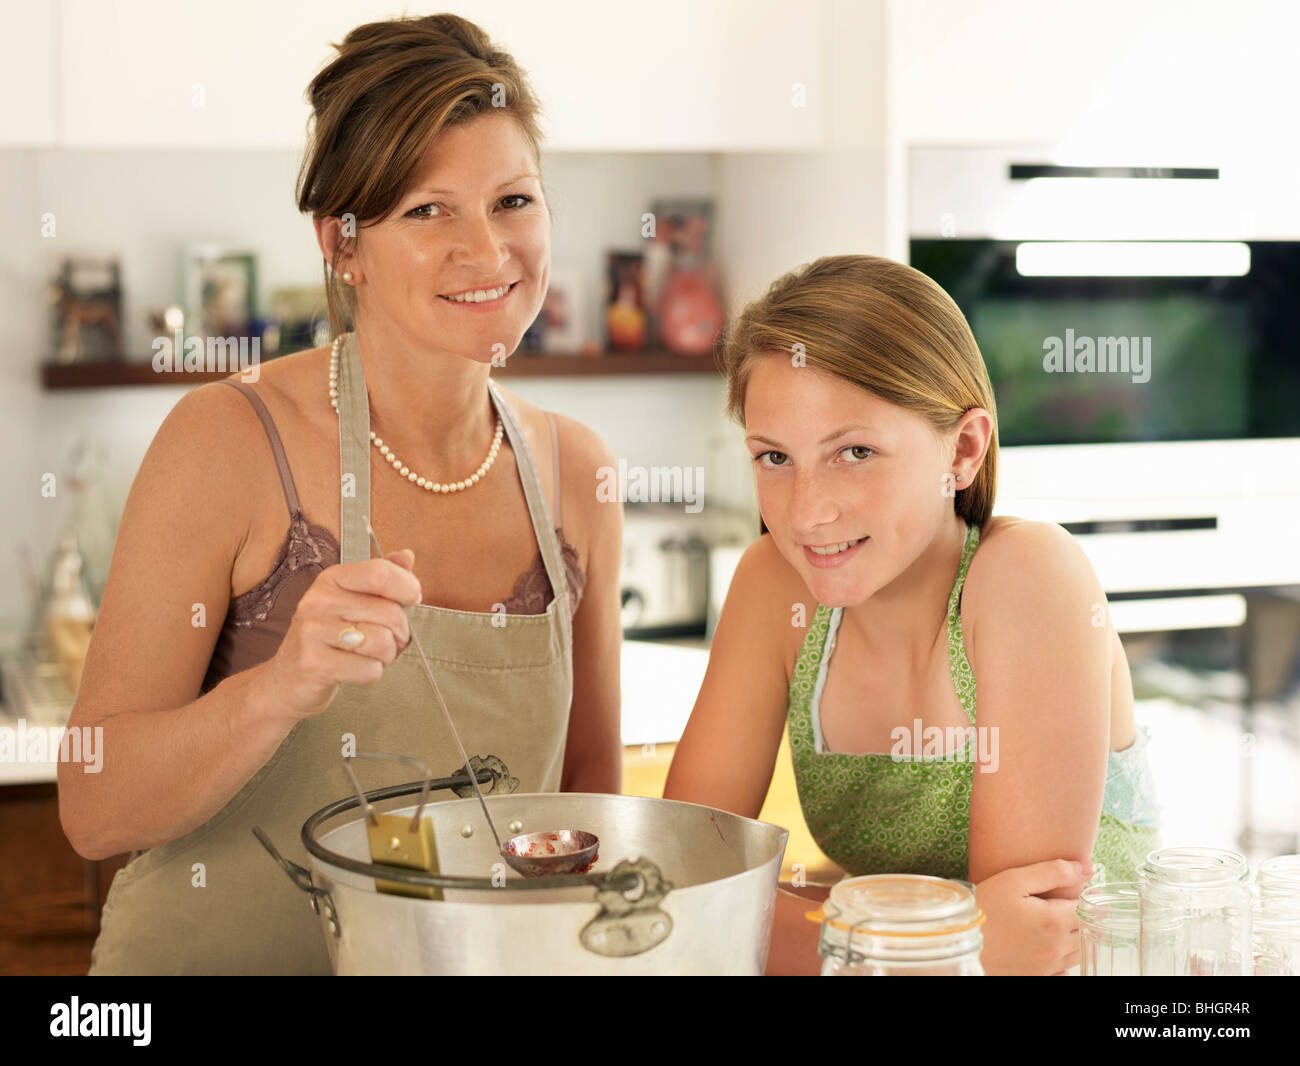 mother and daughter making jam - Stock Image